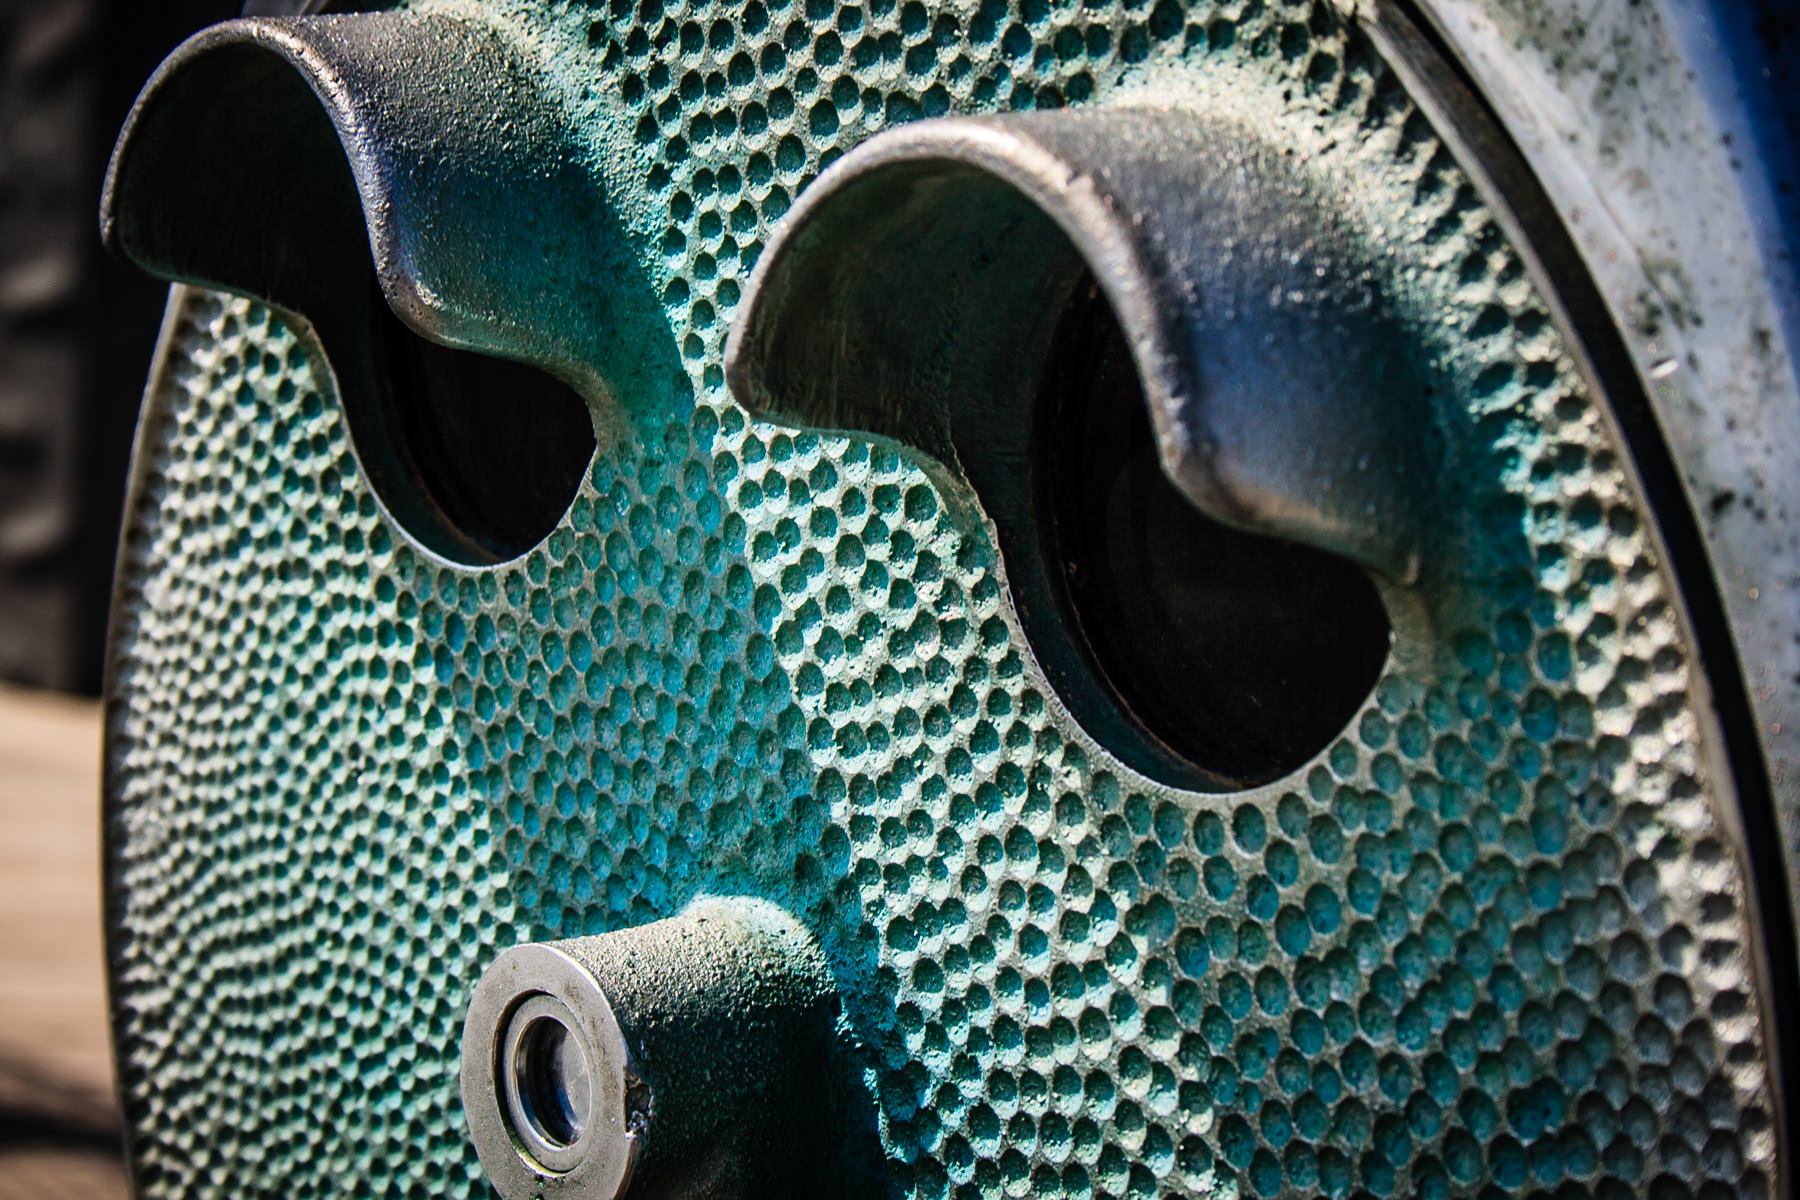 Coin-operated binoculars resemble the inquisitive eyes of a metal face in this picture taken in Port Isabel, Texas.